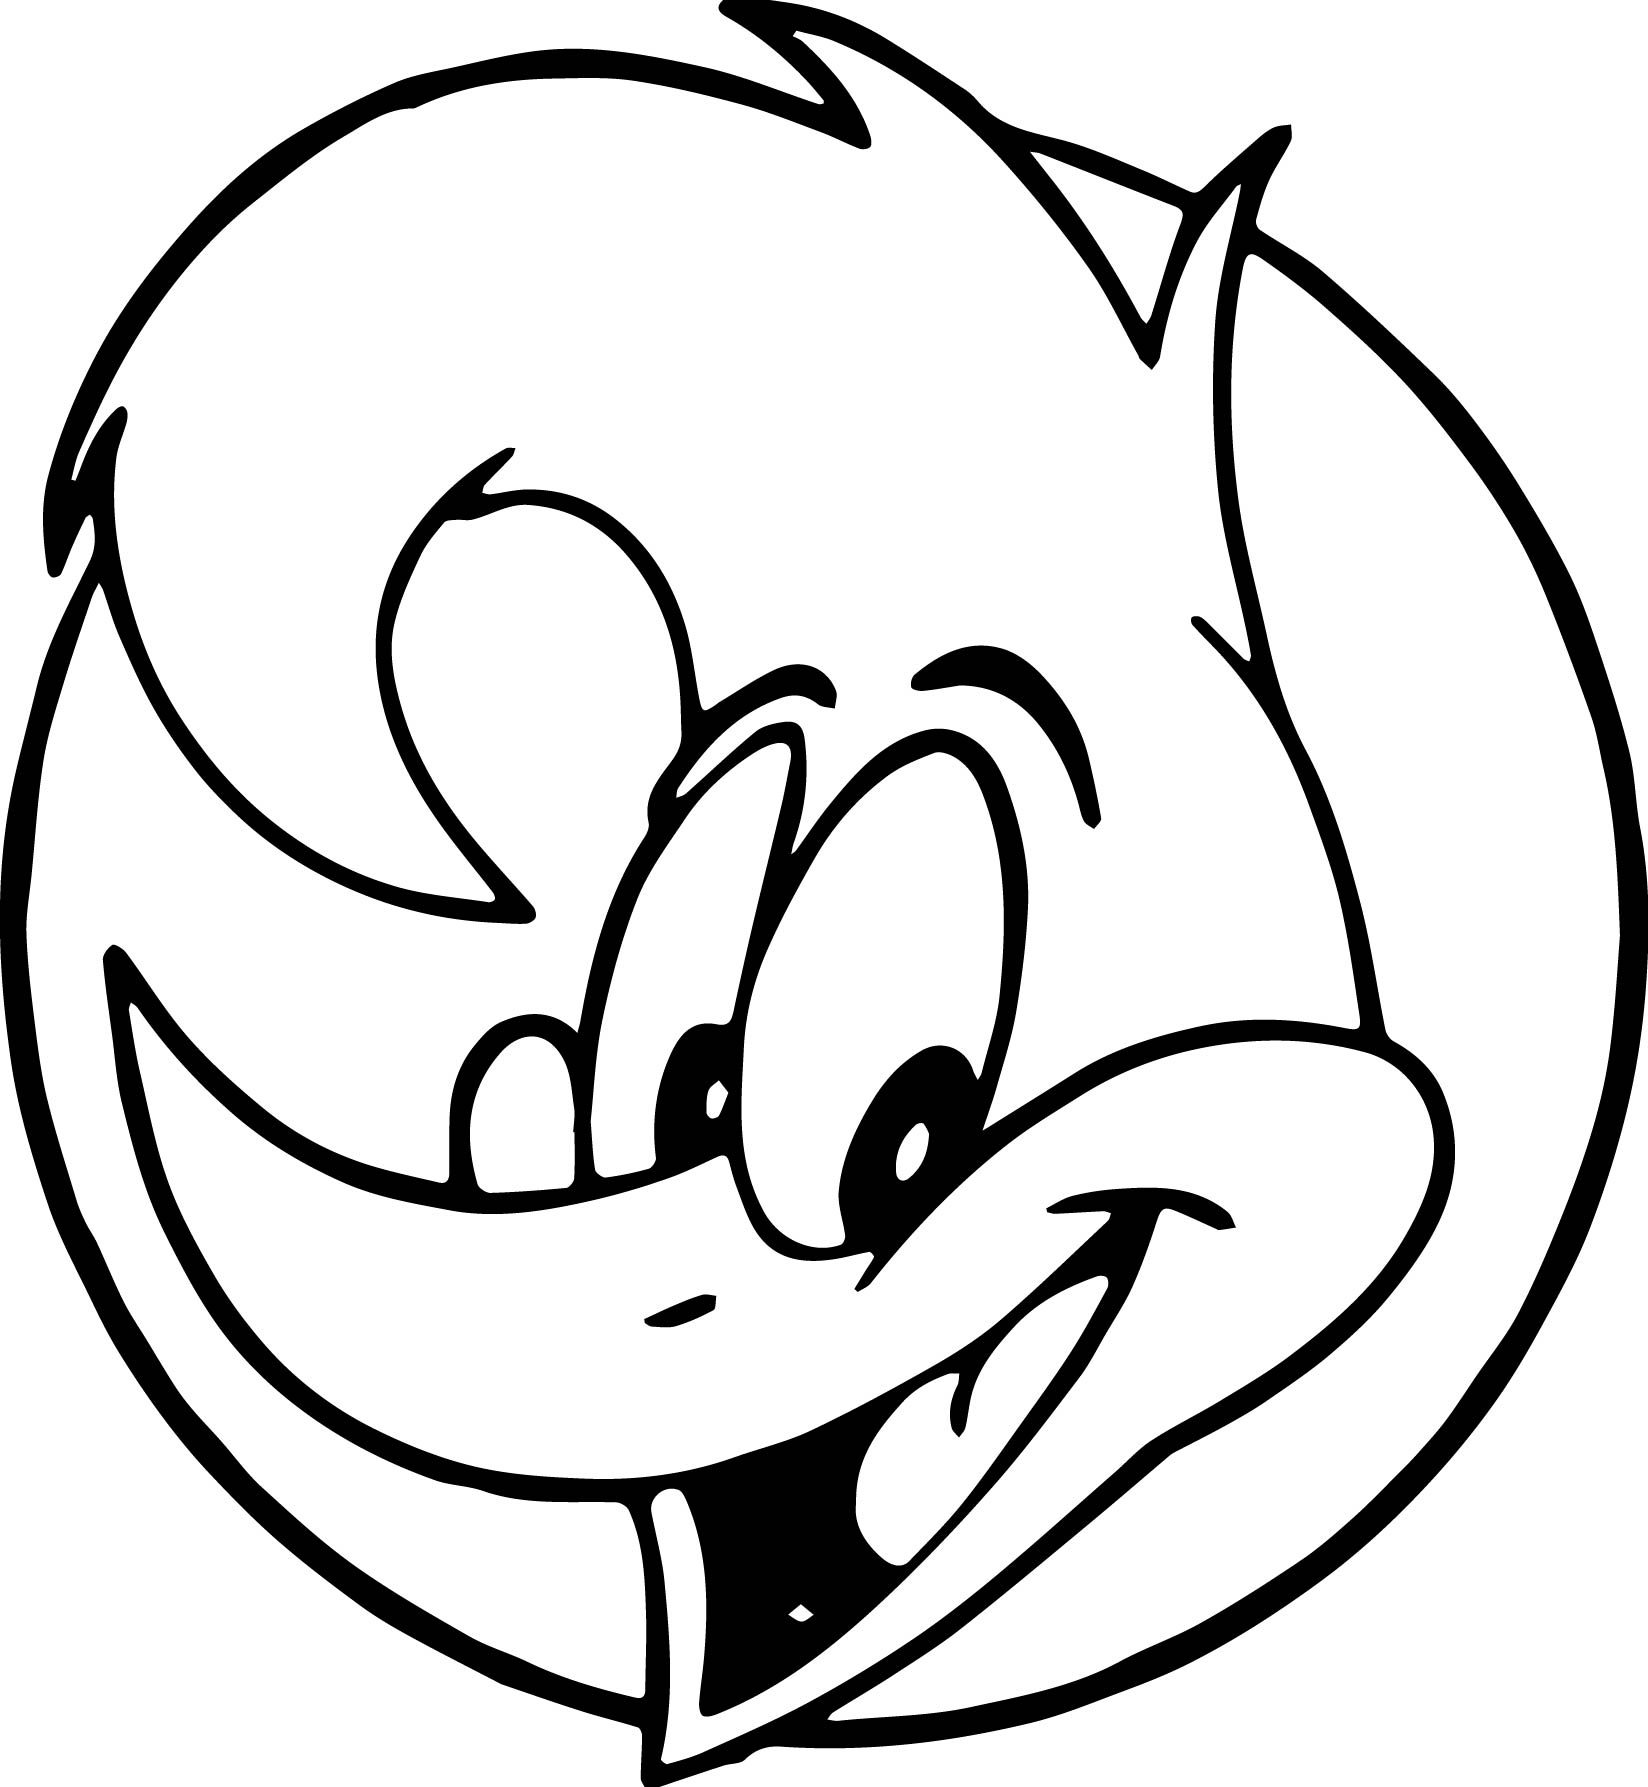 woody woodpecker coloring pages coloring pages woody woodpecker coloring pages woodpecker coloring woody pages